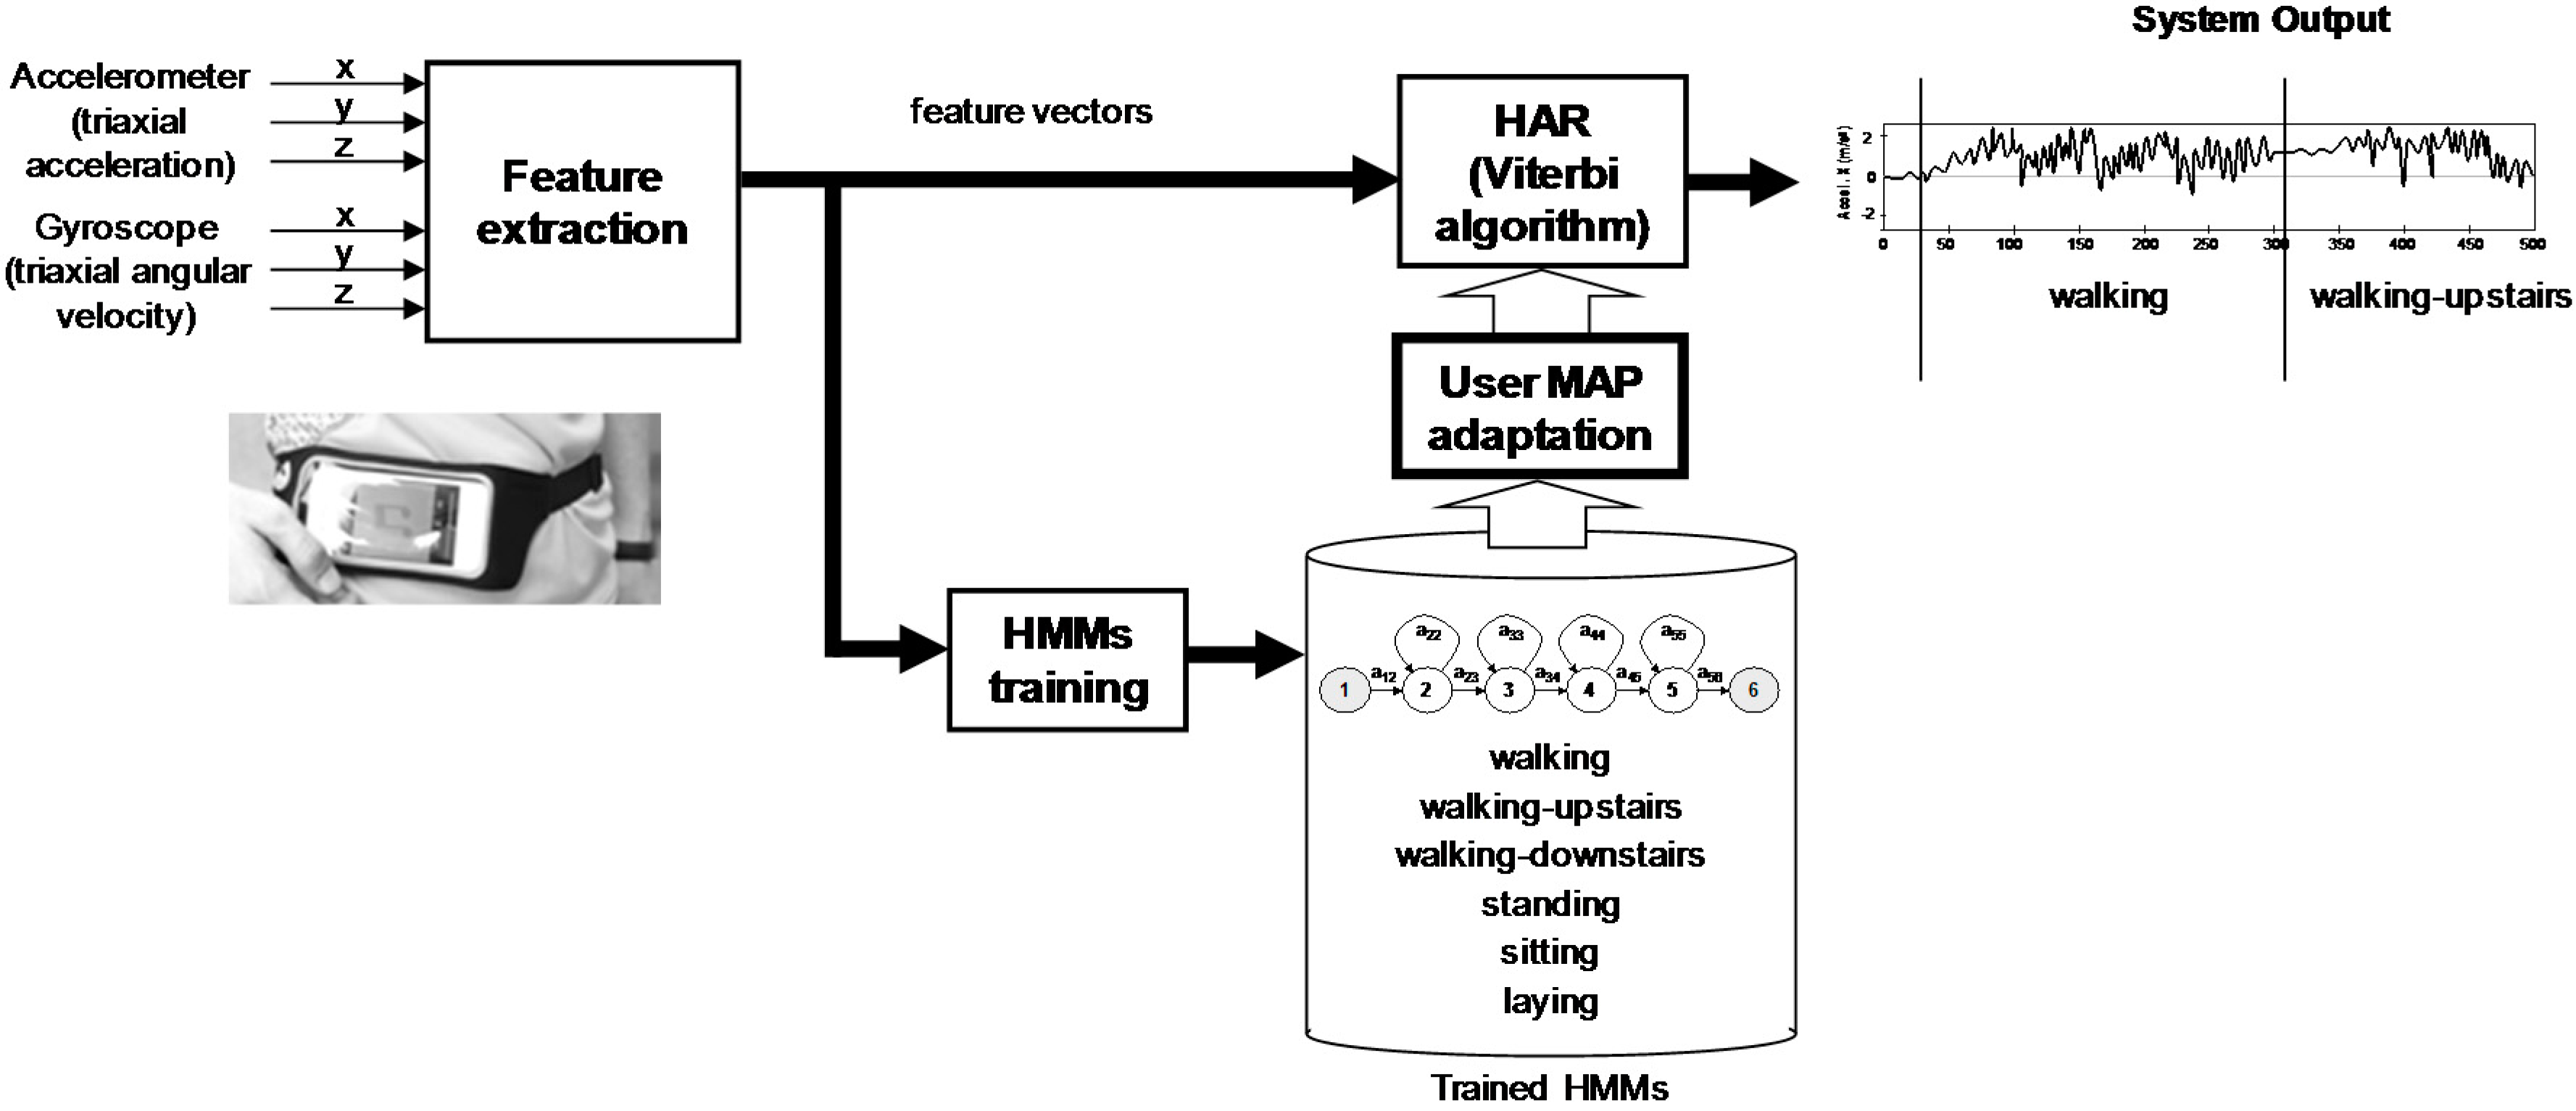 Algorithms | Free Full-Text | HMM Adaptation for Improving a Human